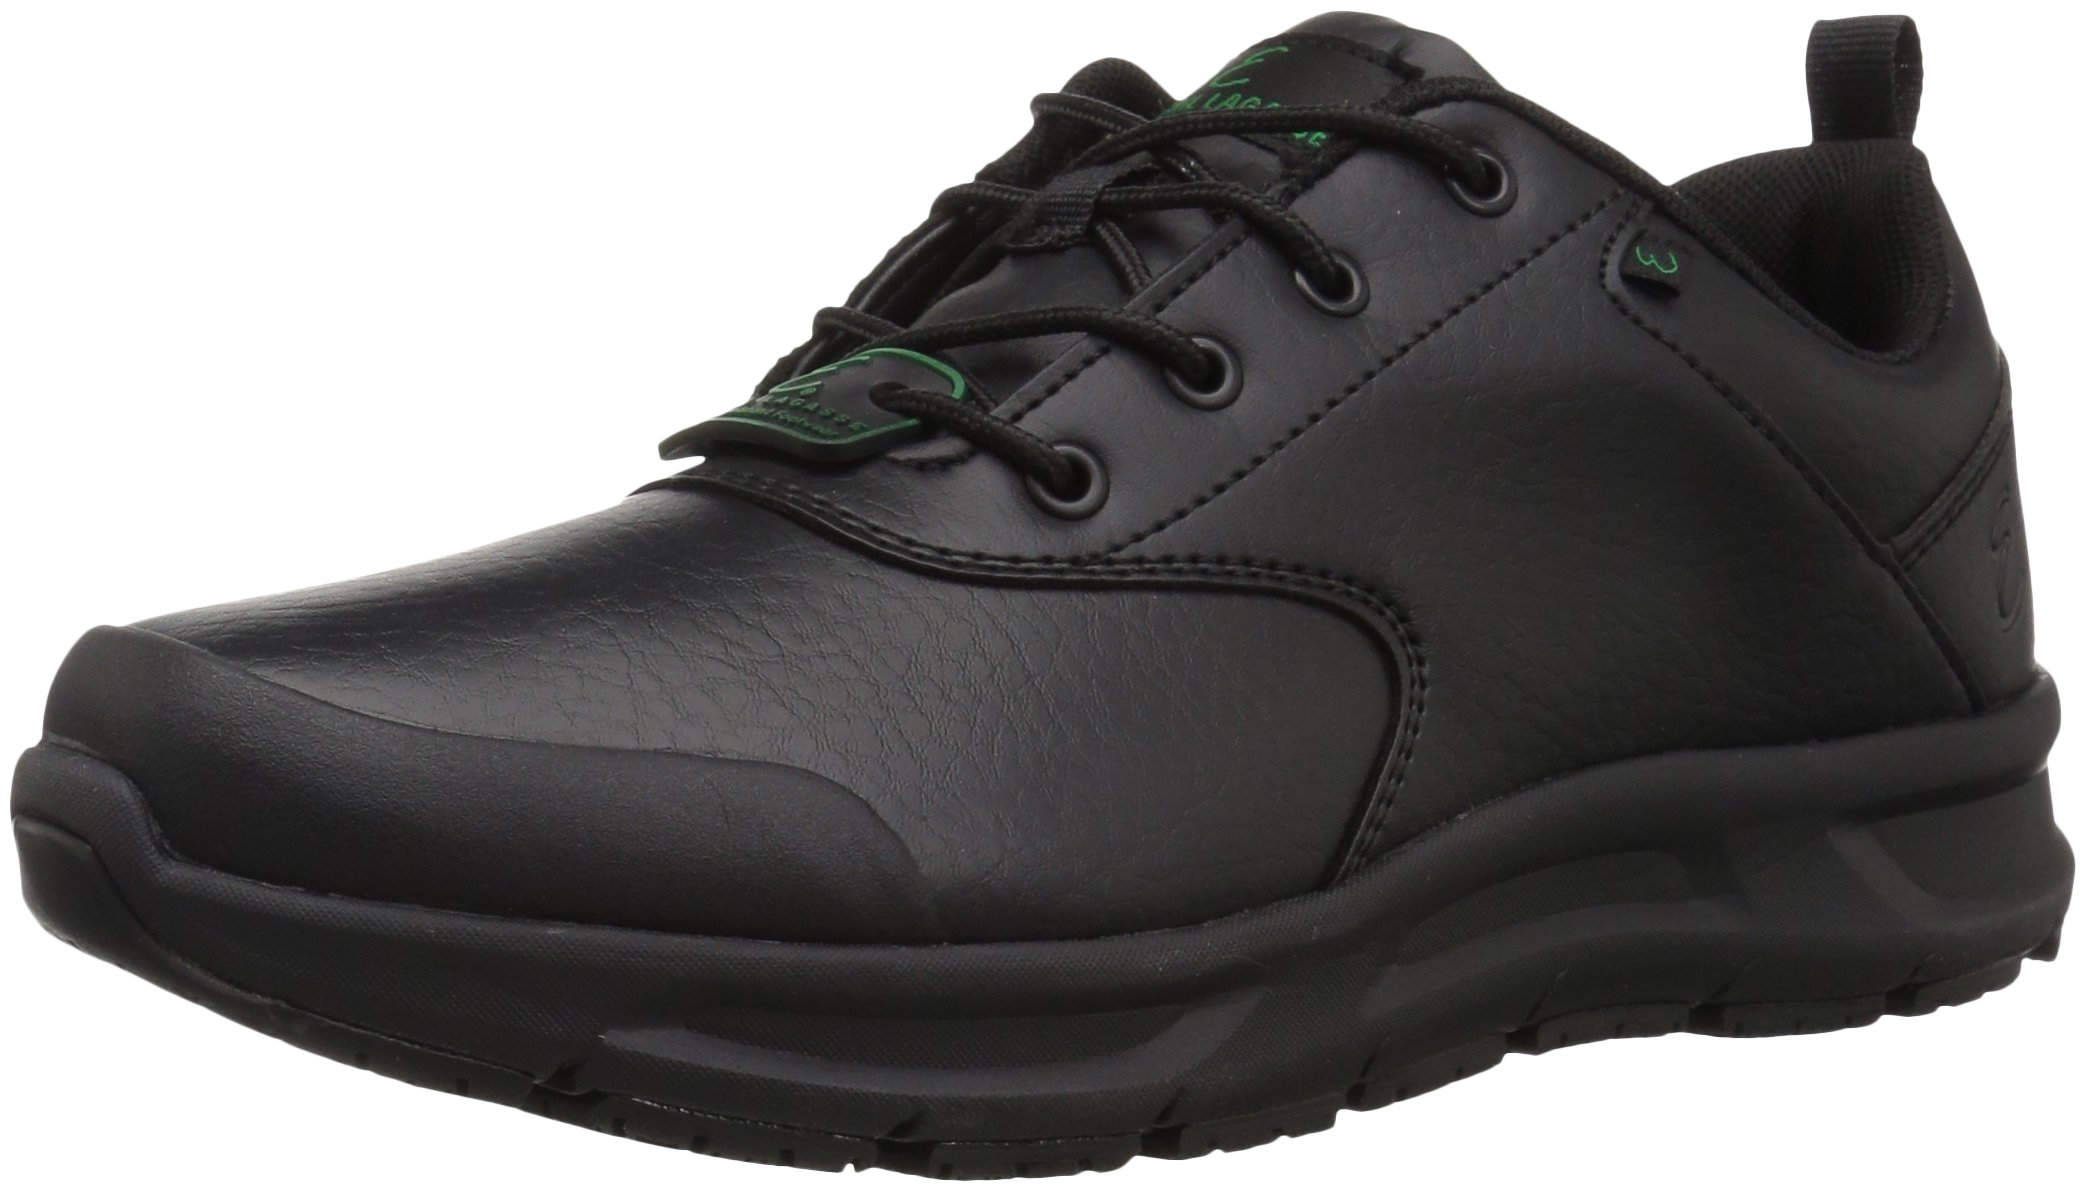 Emeril Lagasse Men's Basin Tumbled Food Service Shoe, Black, 11 Medium US by Emeril Lagasse